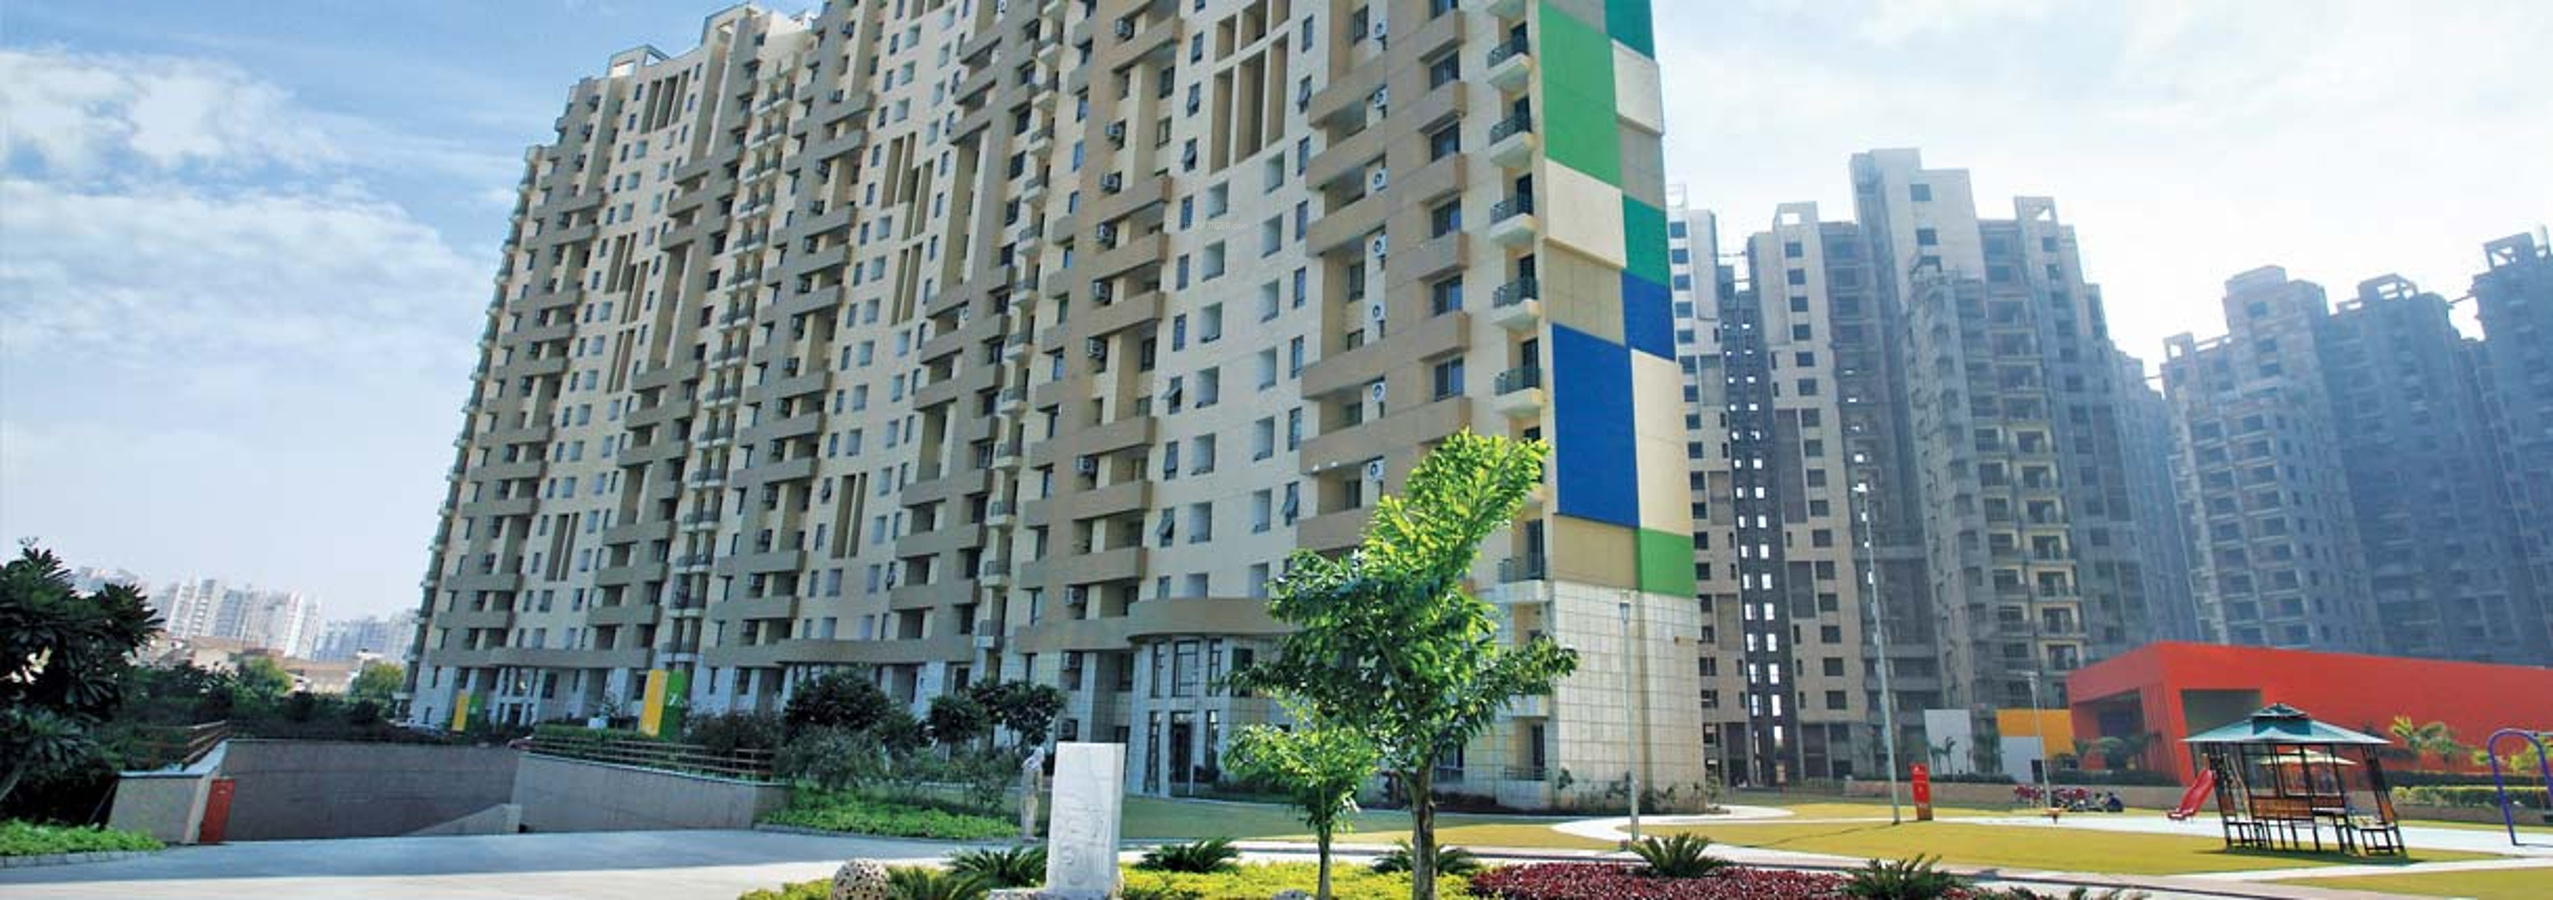 Gurgaon: No electricity in Fresco as Unitech fails to clear electricity bills